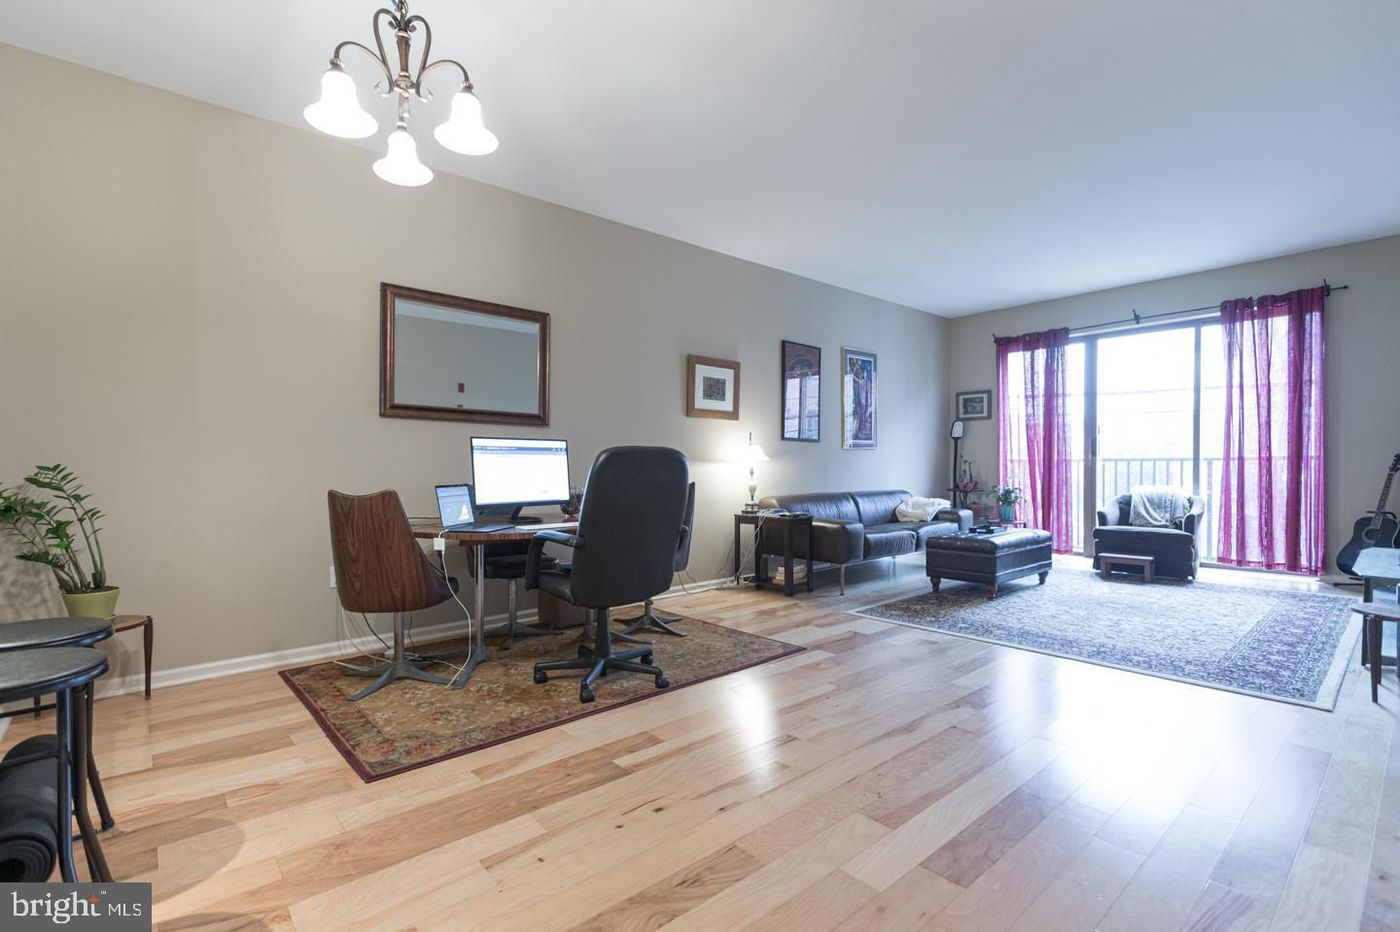 On the market: A low maintenance condo in Northern Liberties for $314,999